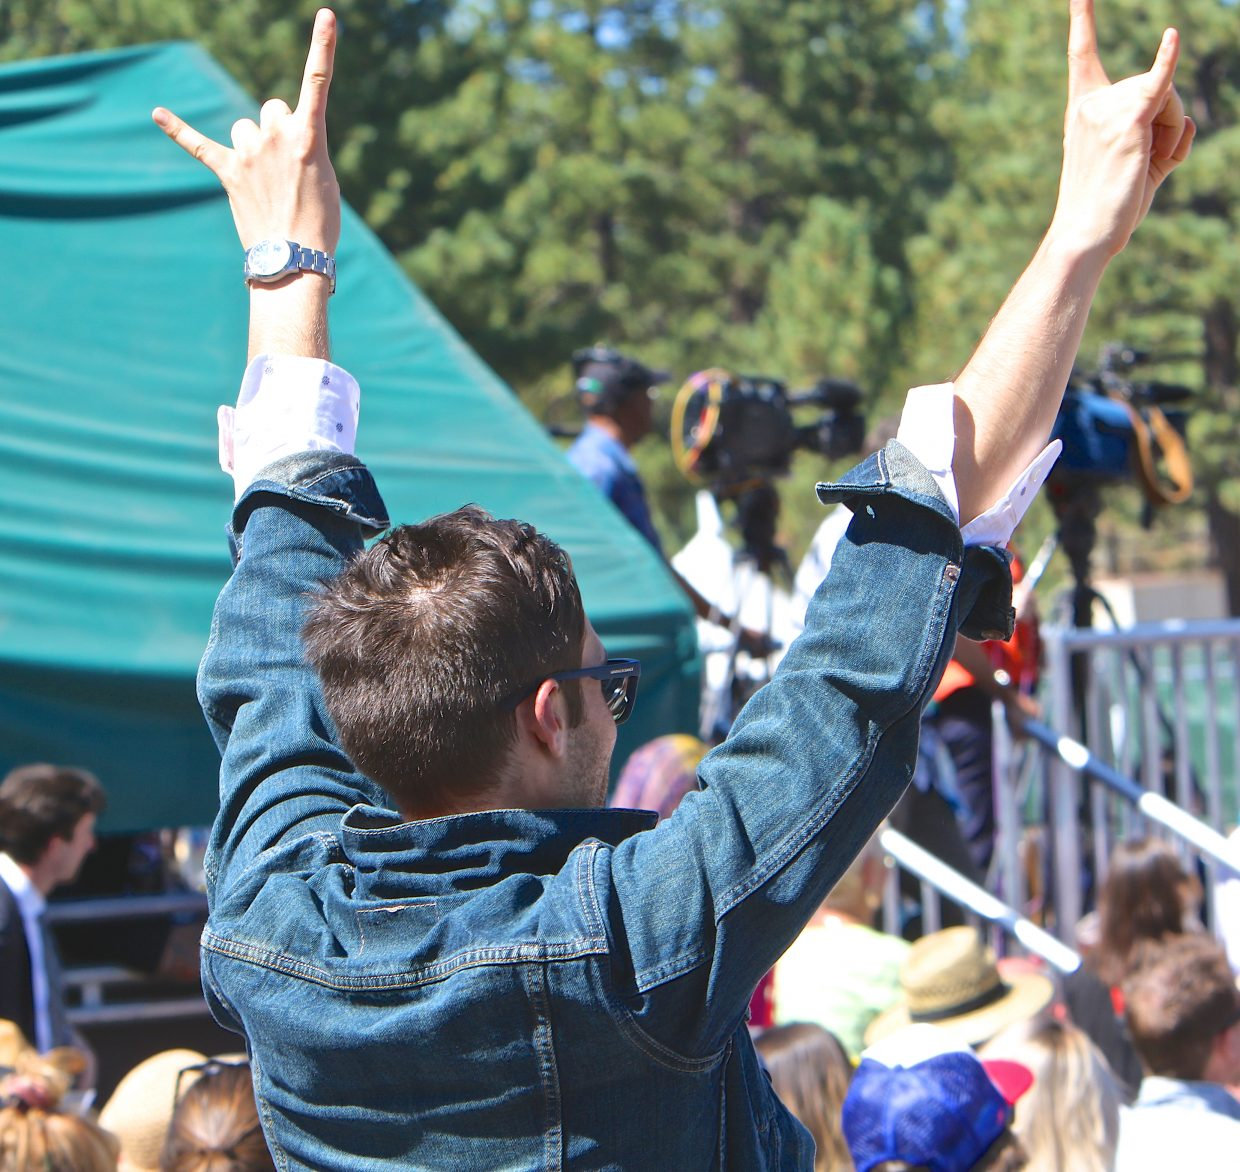 A supporter of the president raises his hands in the air Wednesday at Harvey's Outdoor Amphitheater.